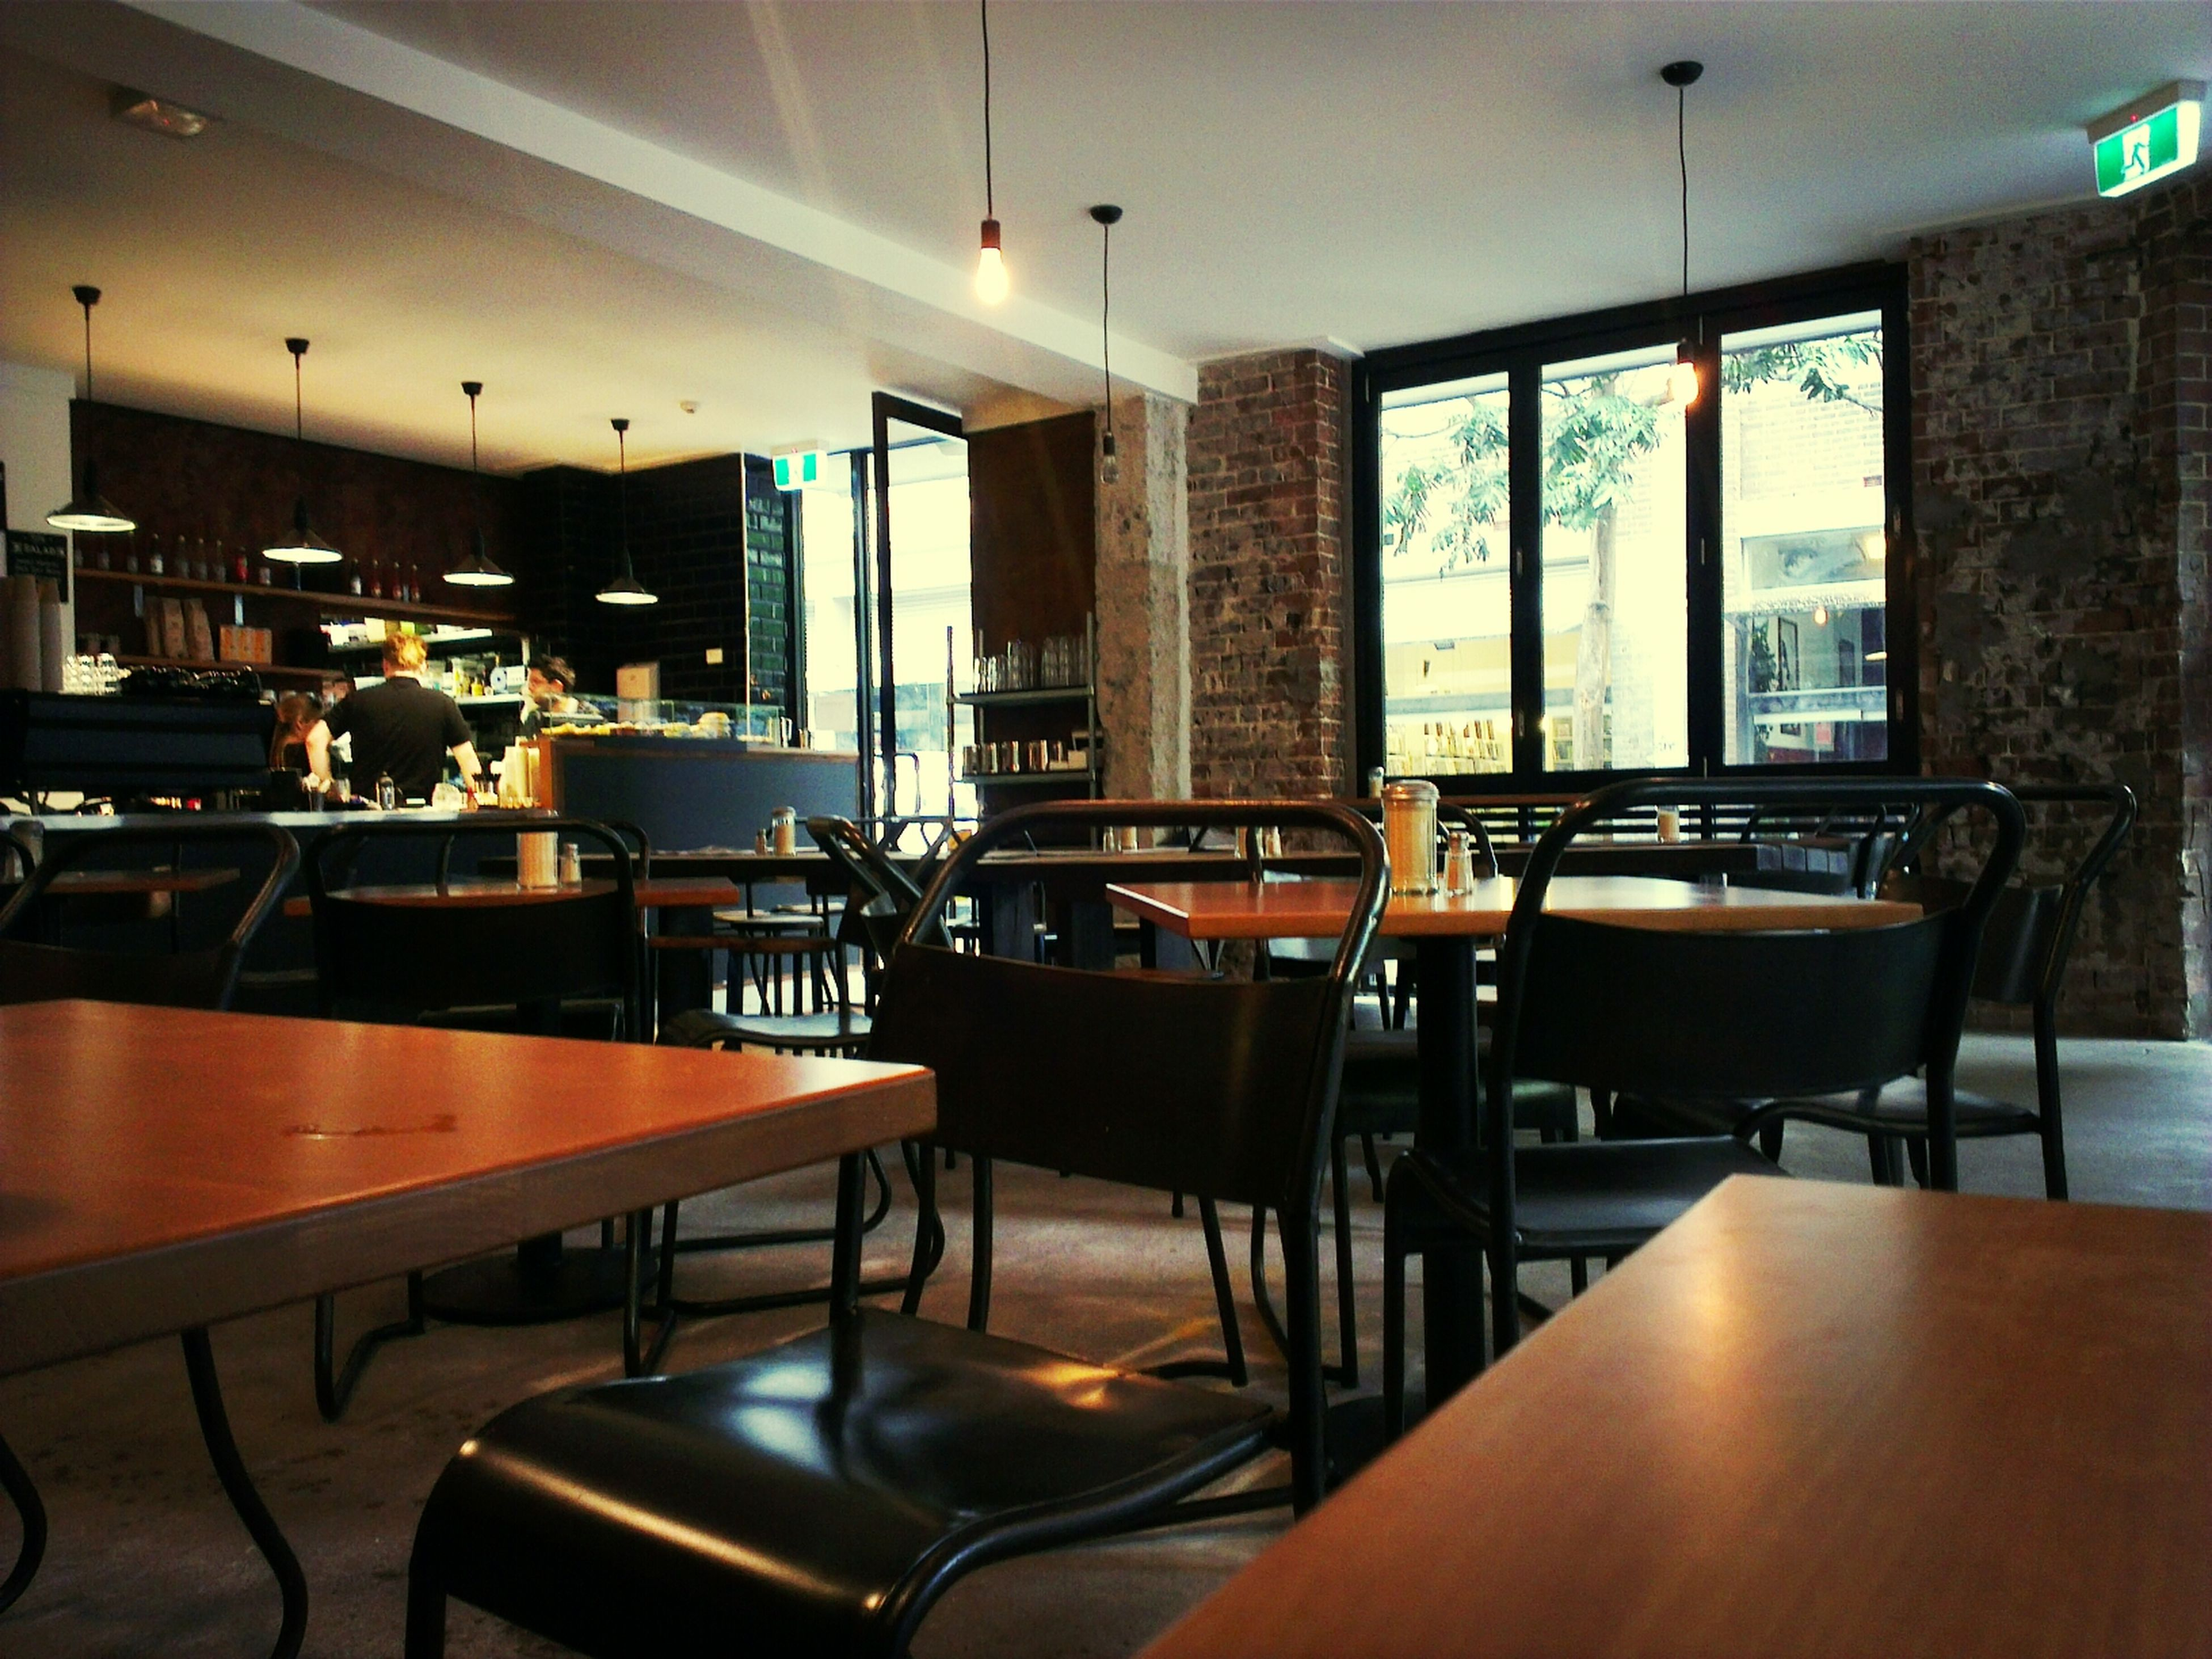 Rainy Day means i have this cafe all to myself!